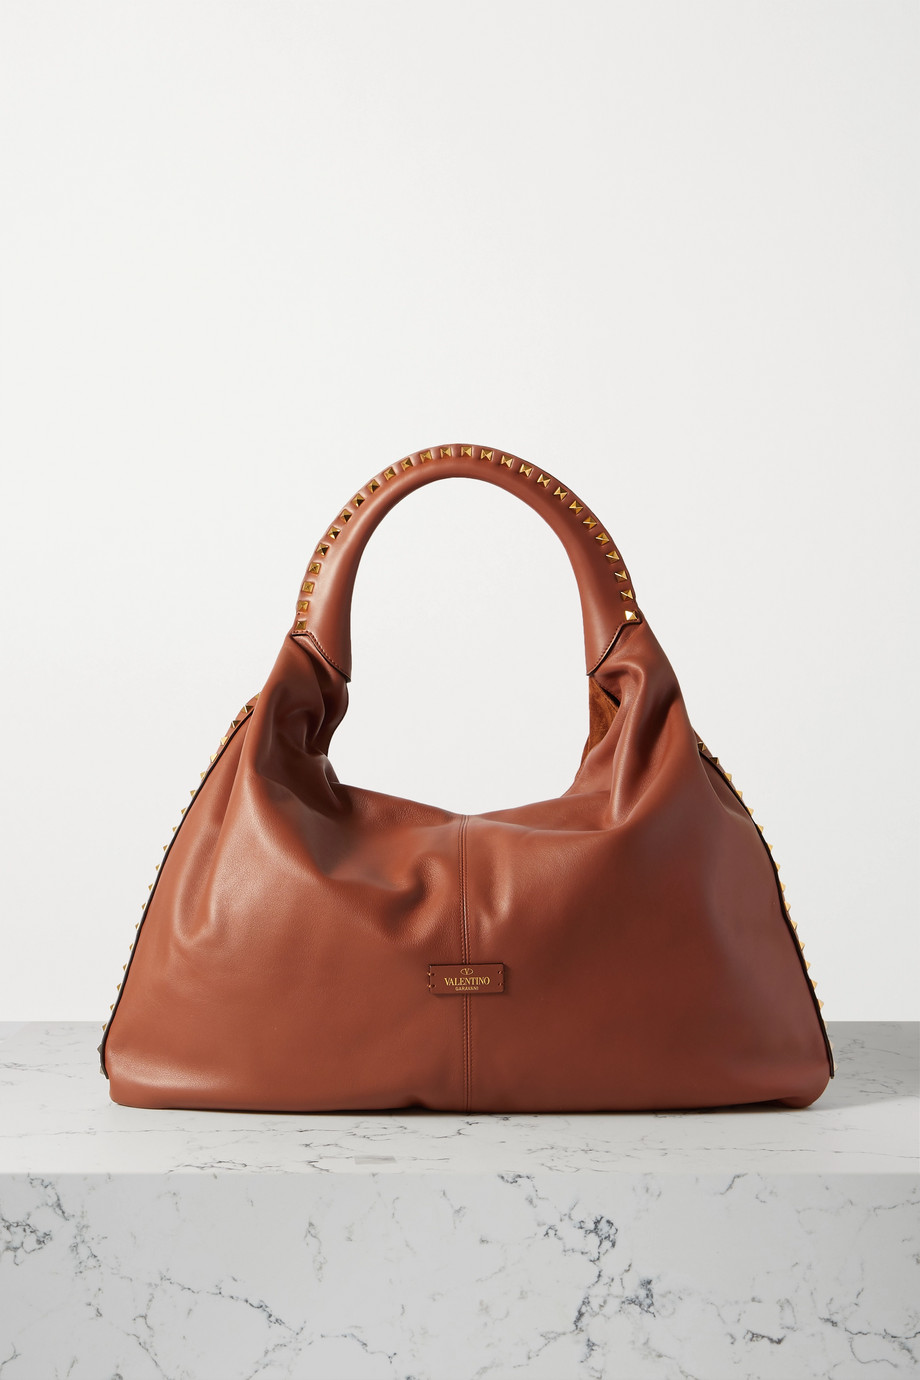 VALENTINO Valentino Garavani Rockstud large paneled leather and suede tote